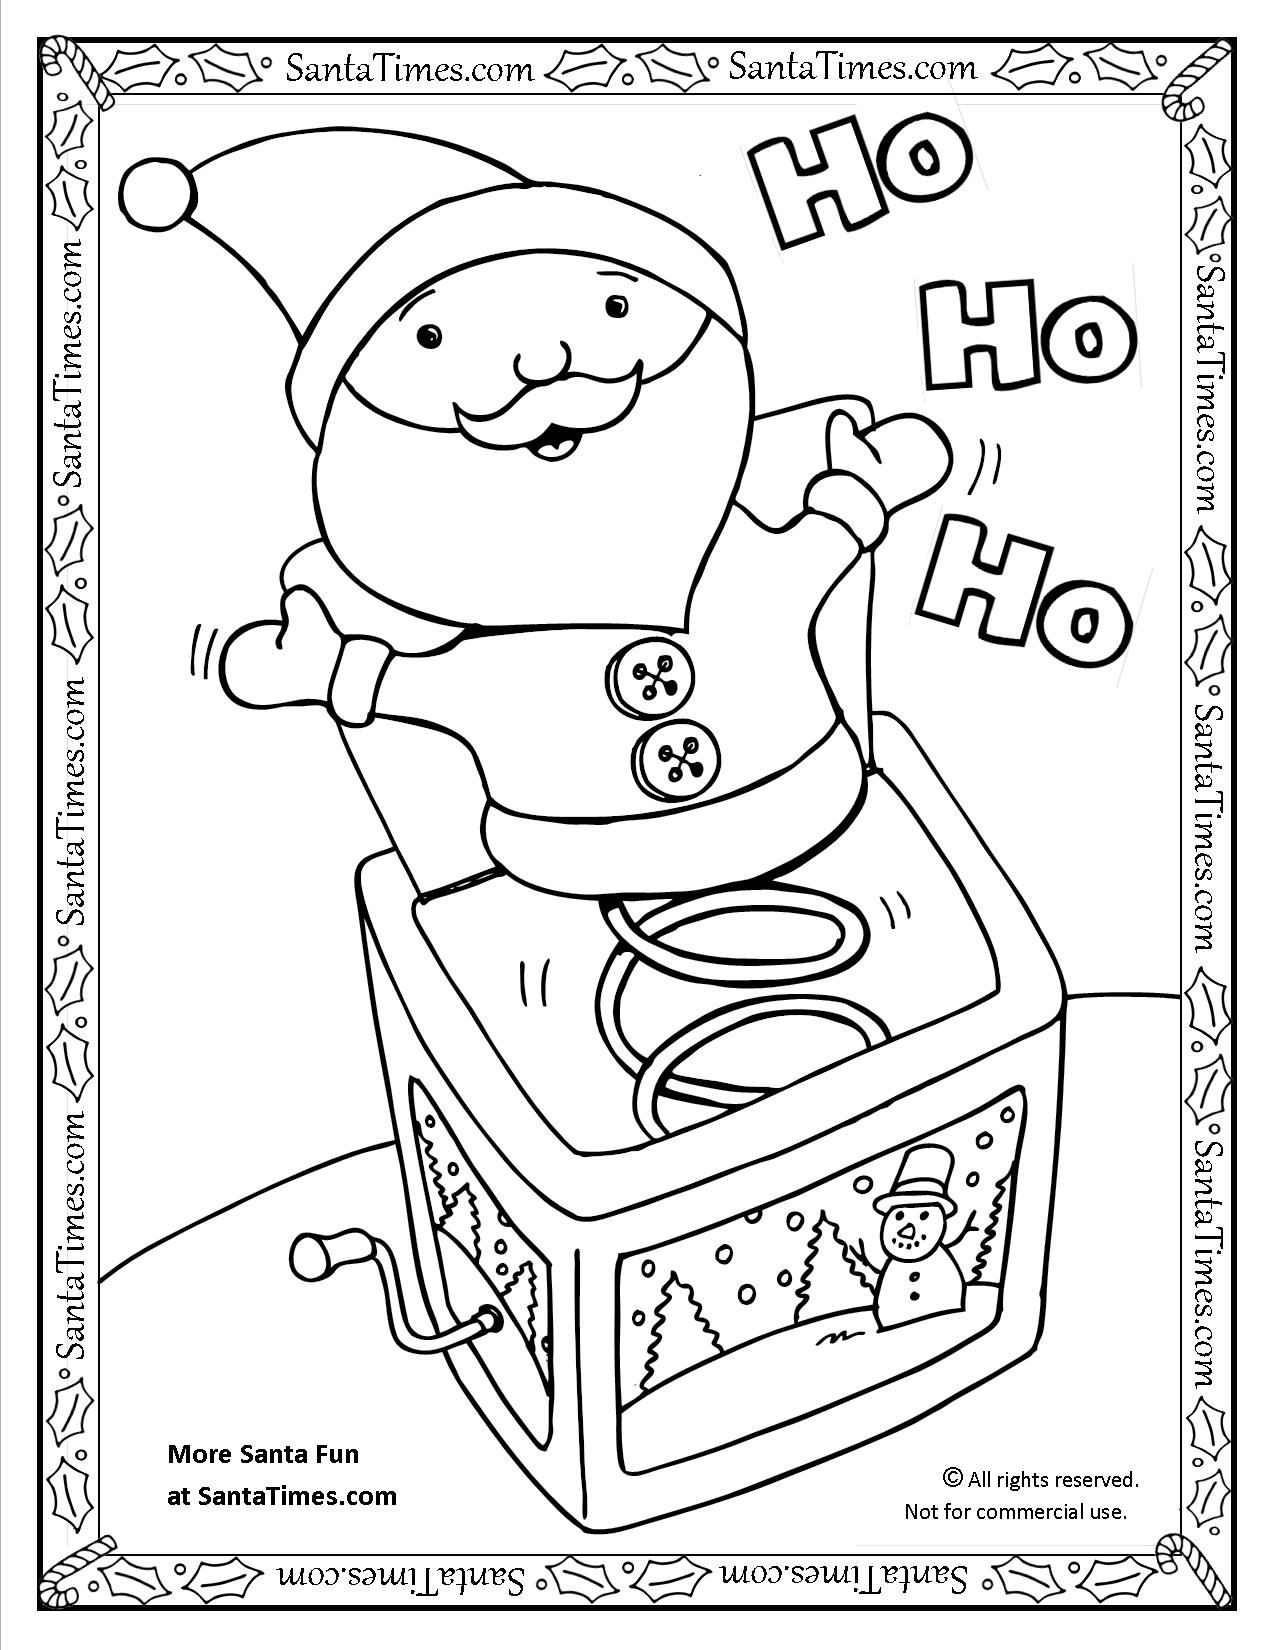 pintable coloring pages Santa Jack in the box Pintable Coloring Page pintable coloring pages